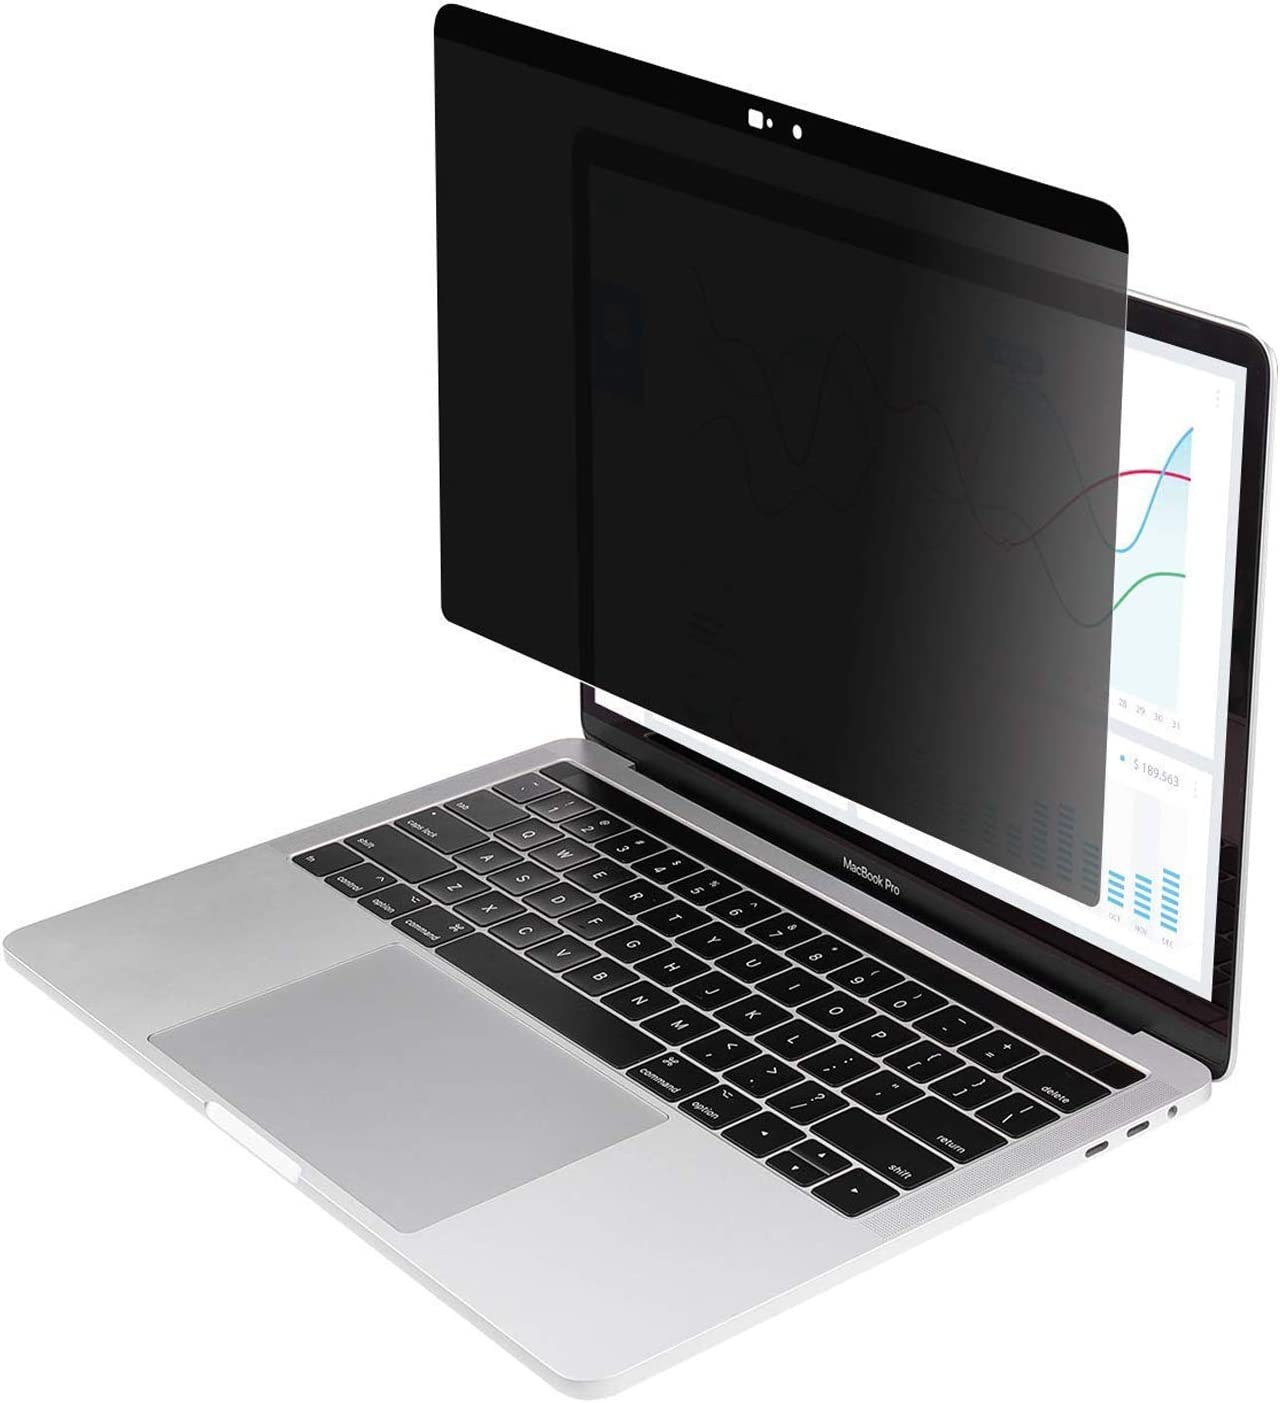 AISCPRO Magnetic Privacy Screen Protector【Webcam Cover Slide】 Anti-Spy Filter Fit MacBook Air 13 Inch Laptop (Model: A1237/A1304/A1369/A1466)